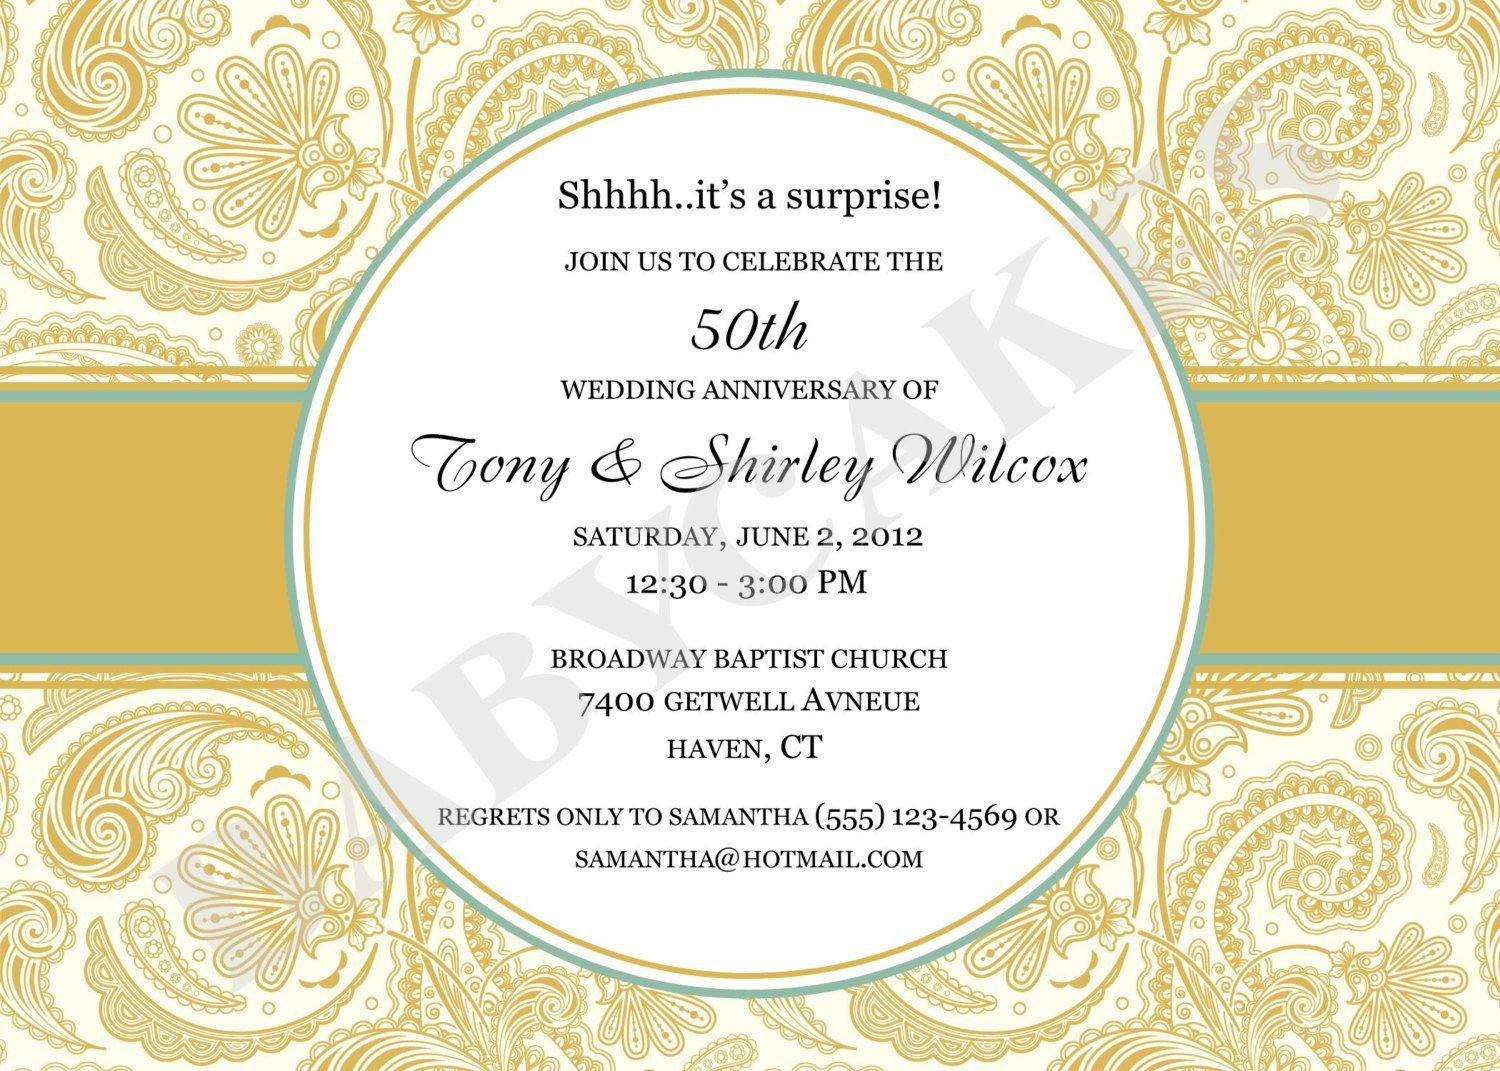 wedding invitation : golden wedding anniversary invitations - Superb ...